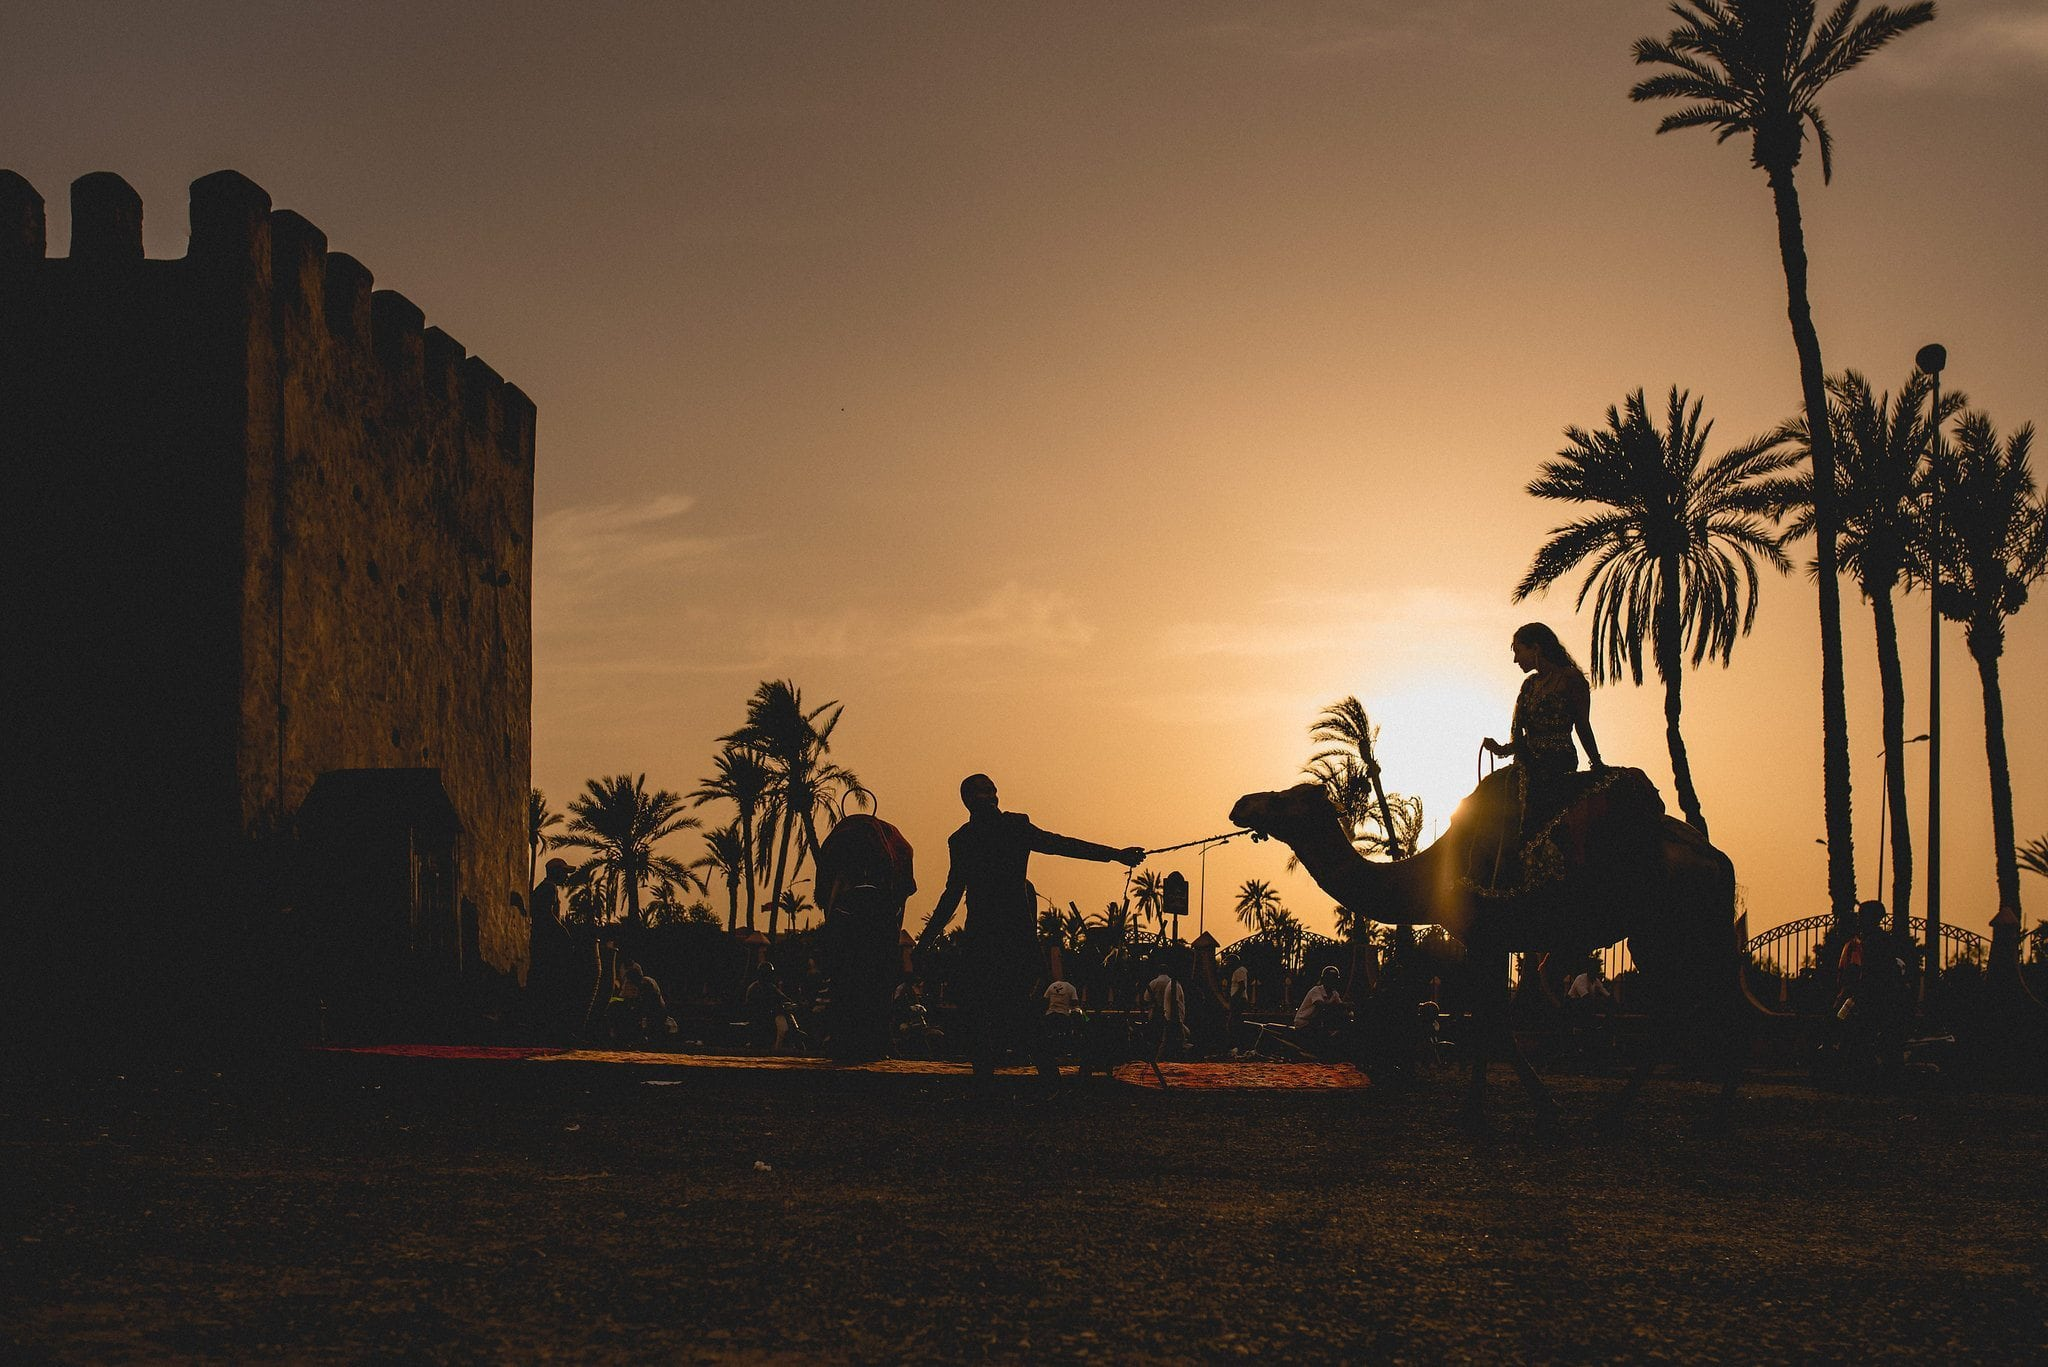 Indian groom leads his bride on a camel across the square in Marrakech at sunset